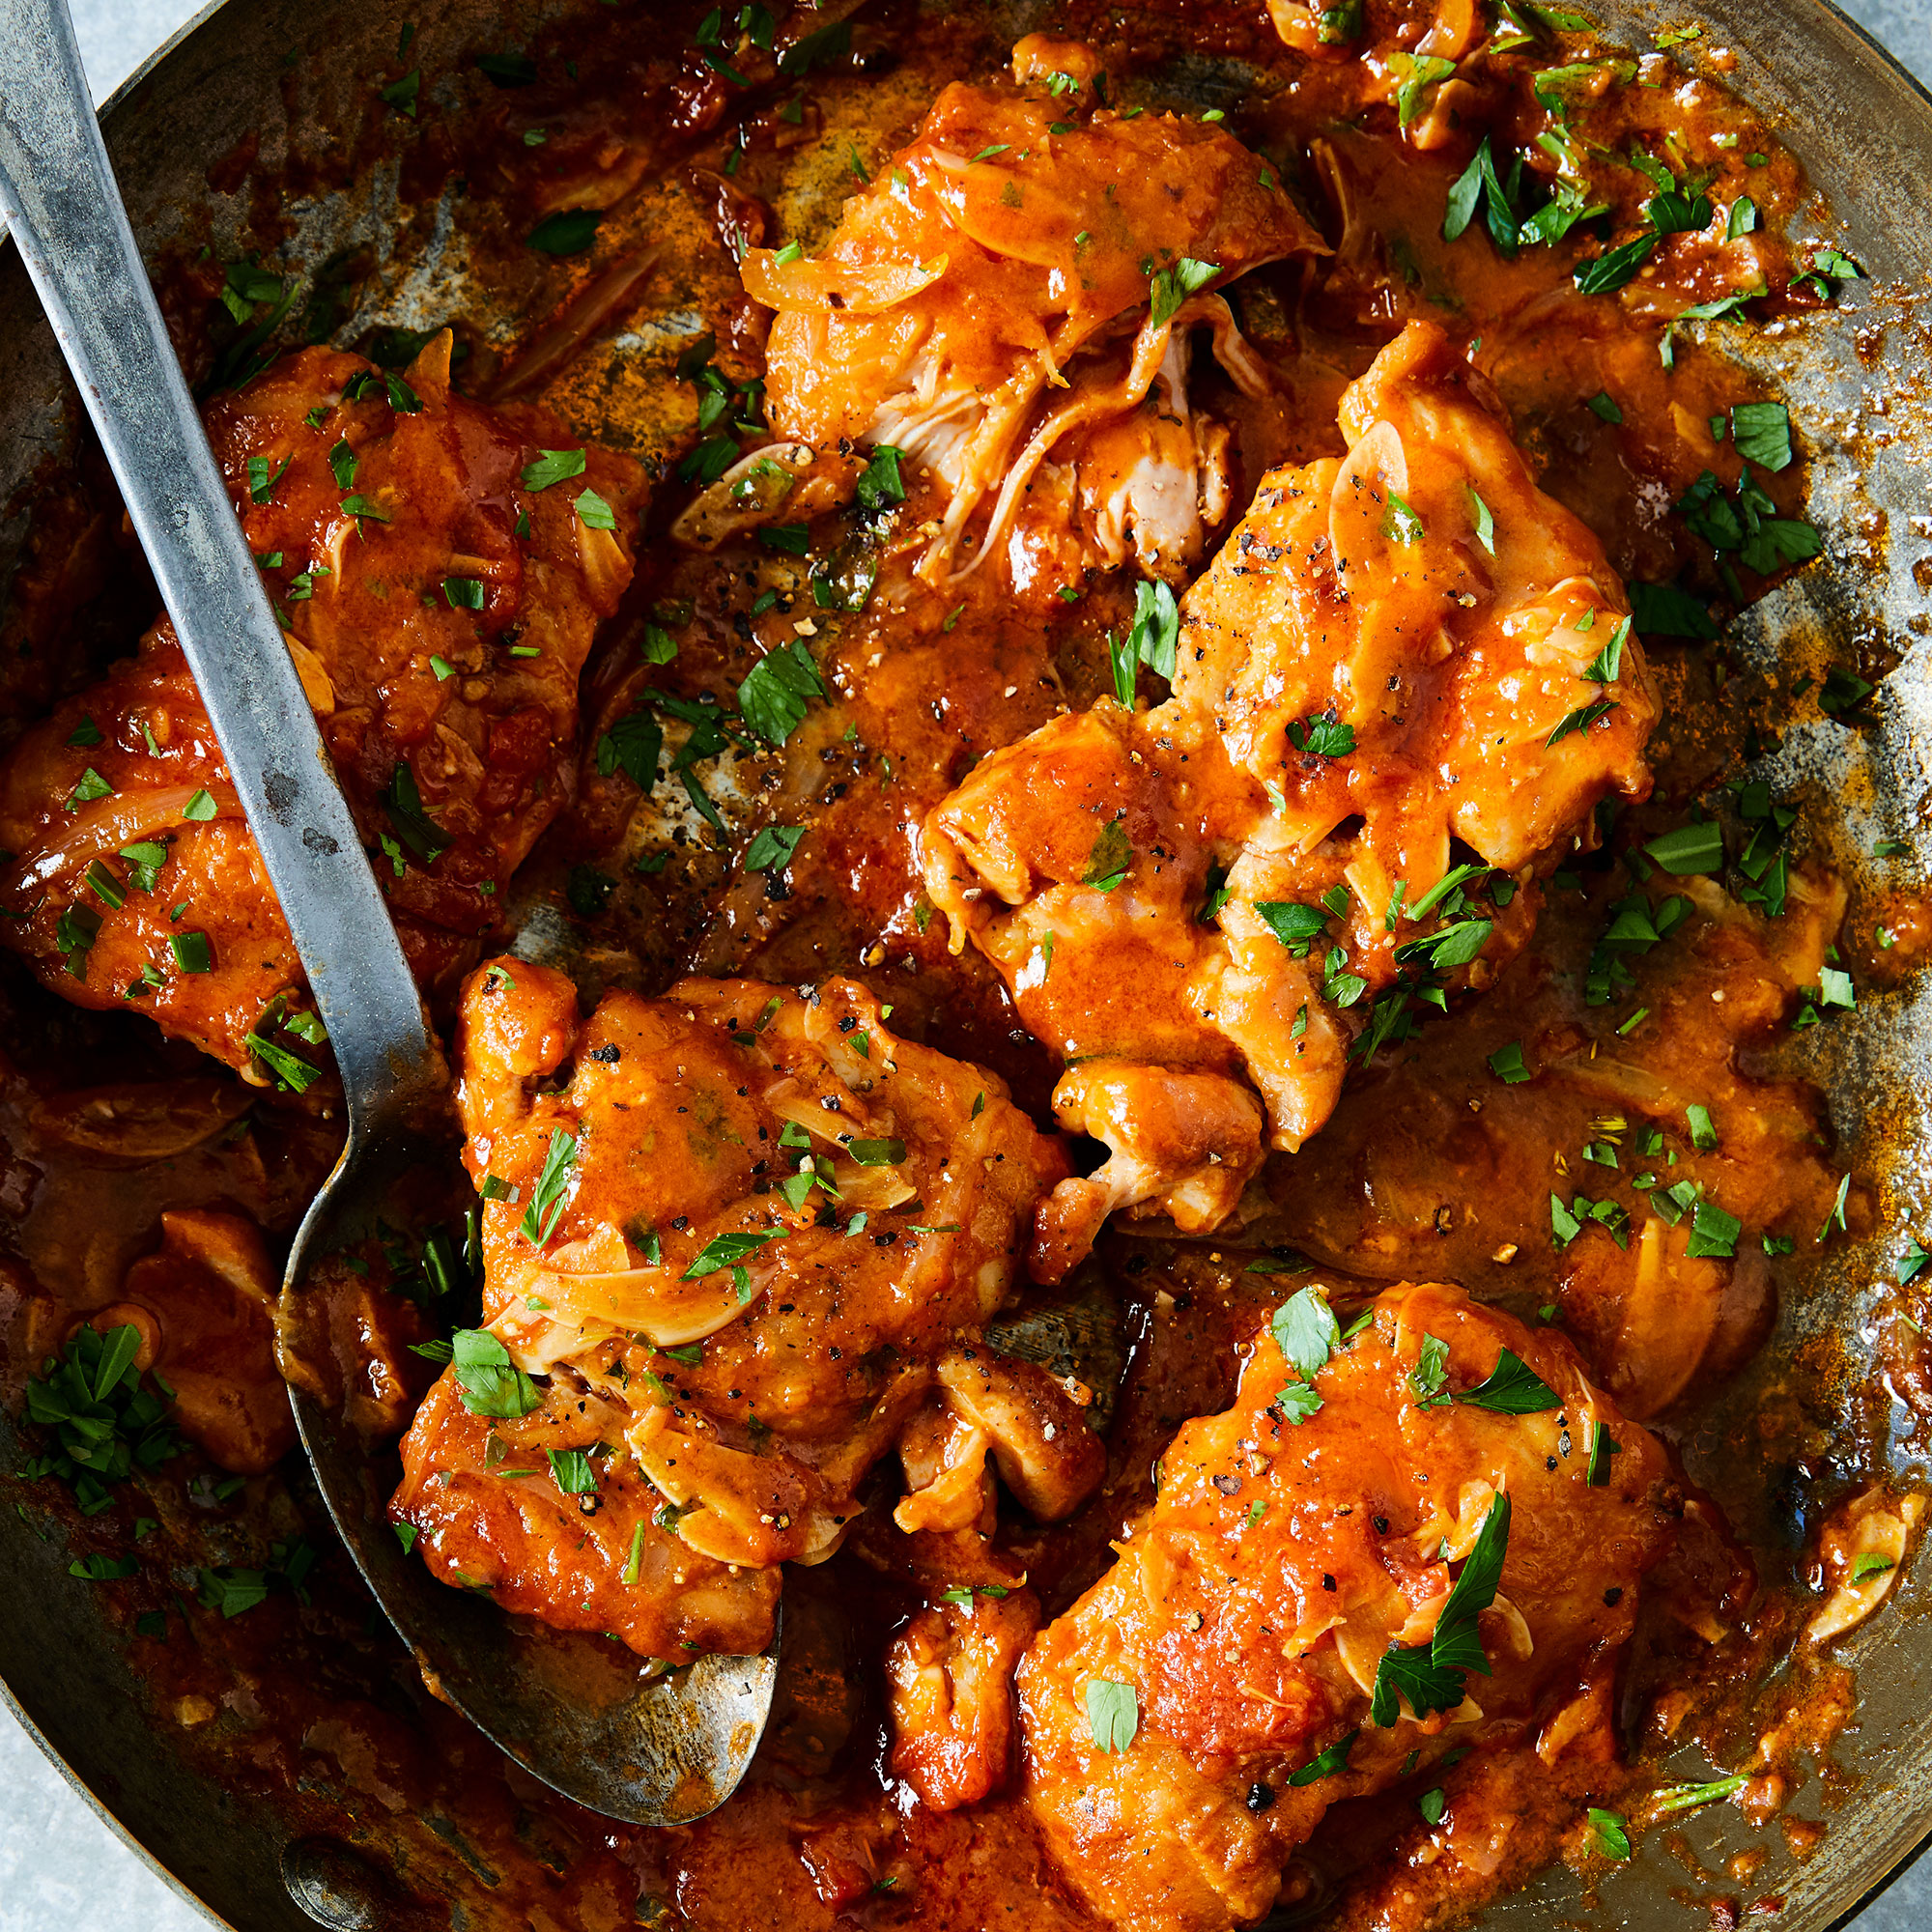 Poulet au Vinaigre (Chicken in Vinegar)